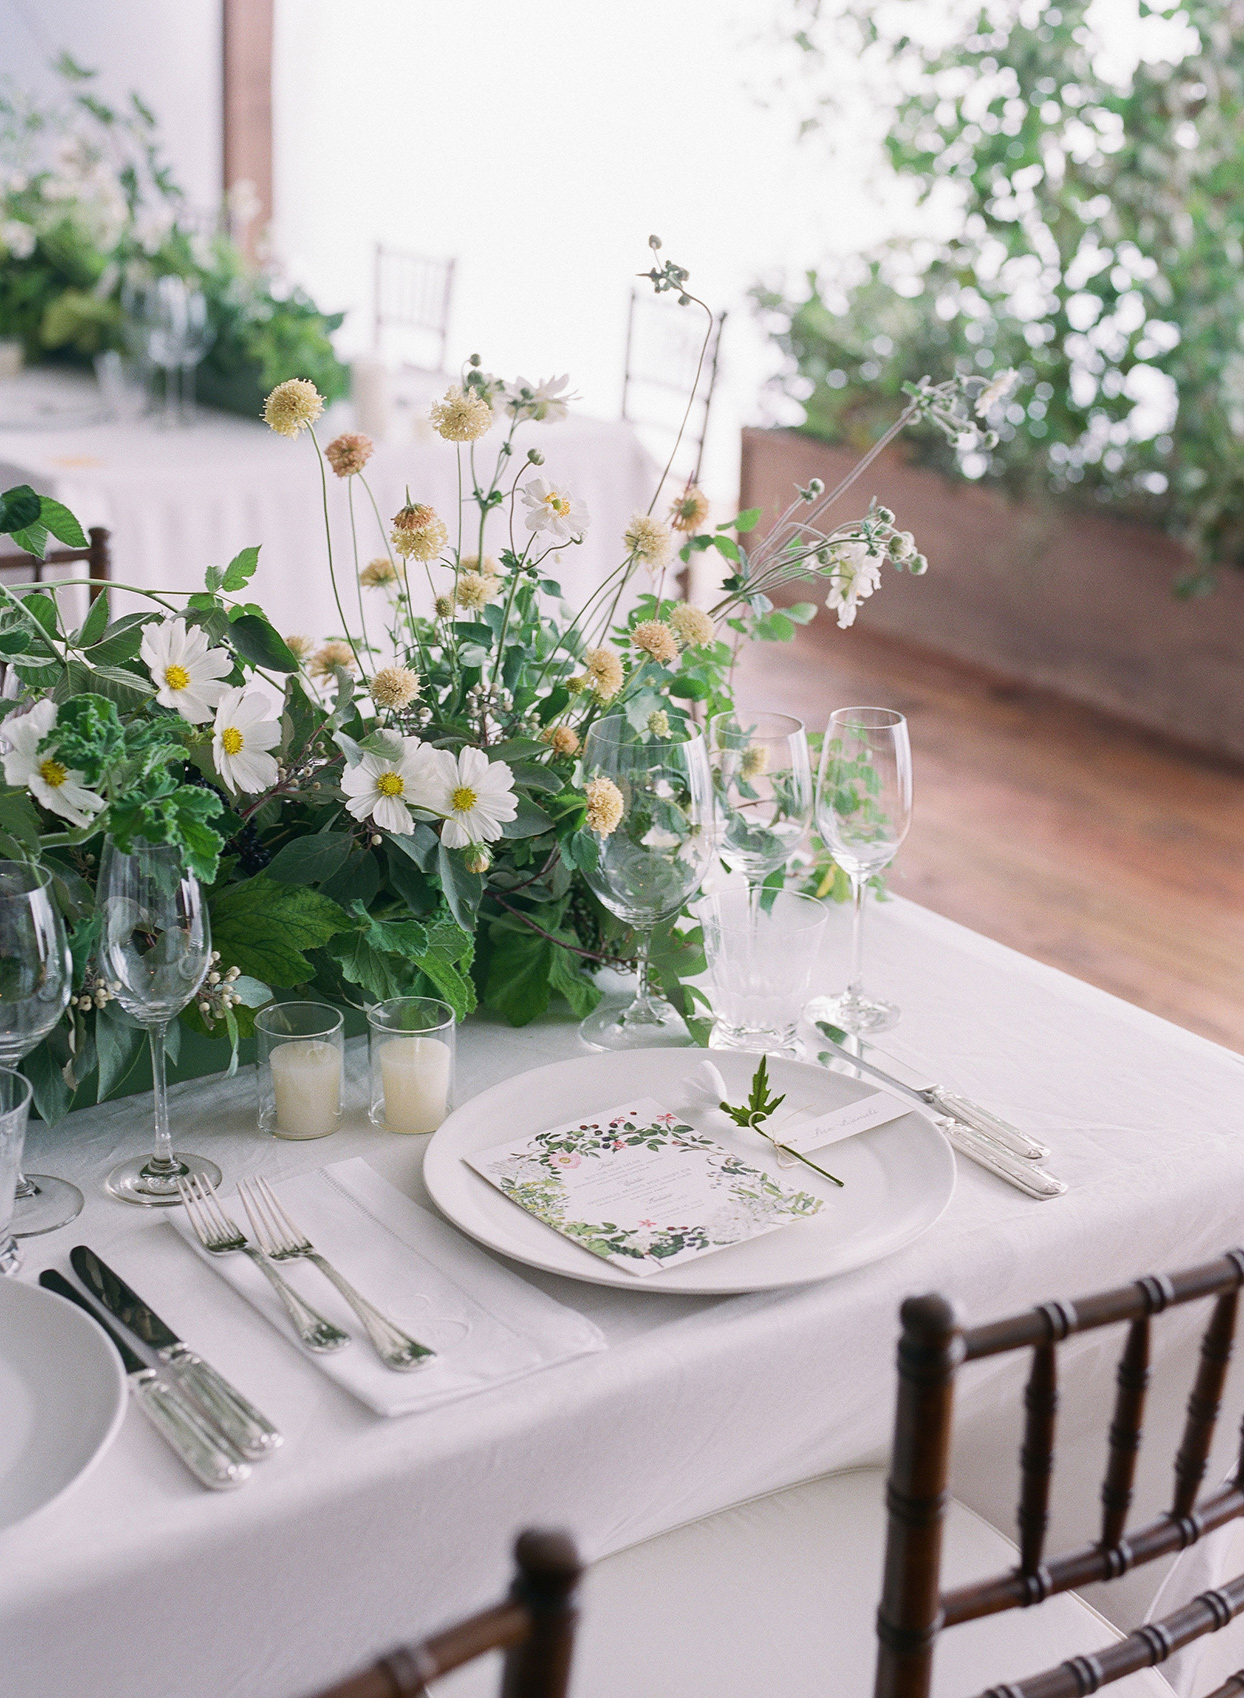 simple wedding place setting with wildflowers and candles